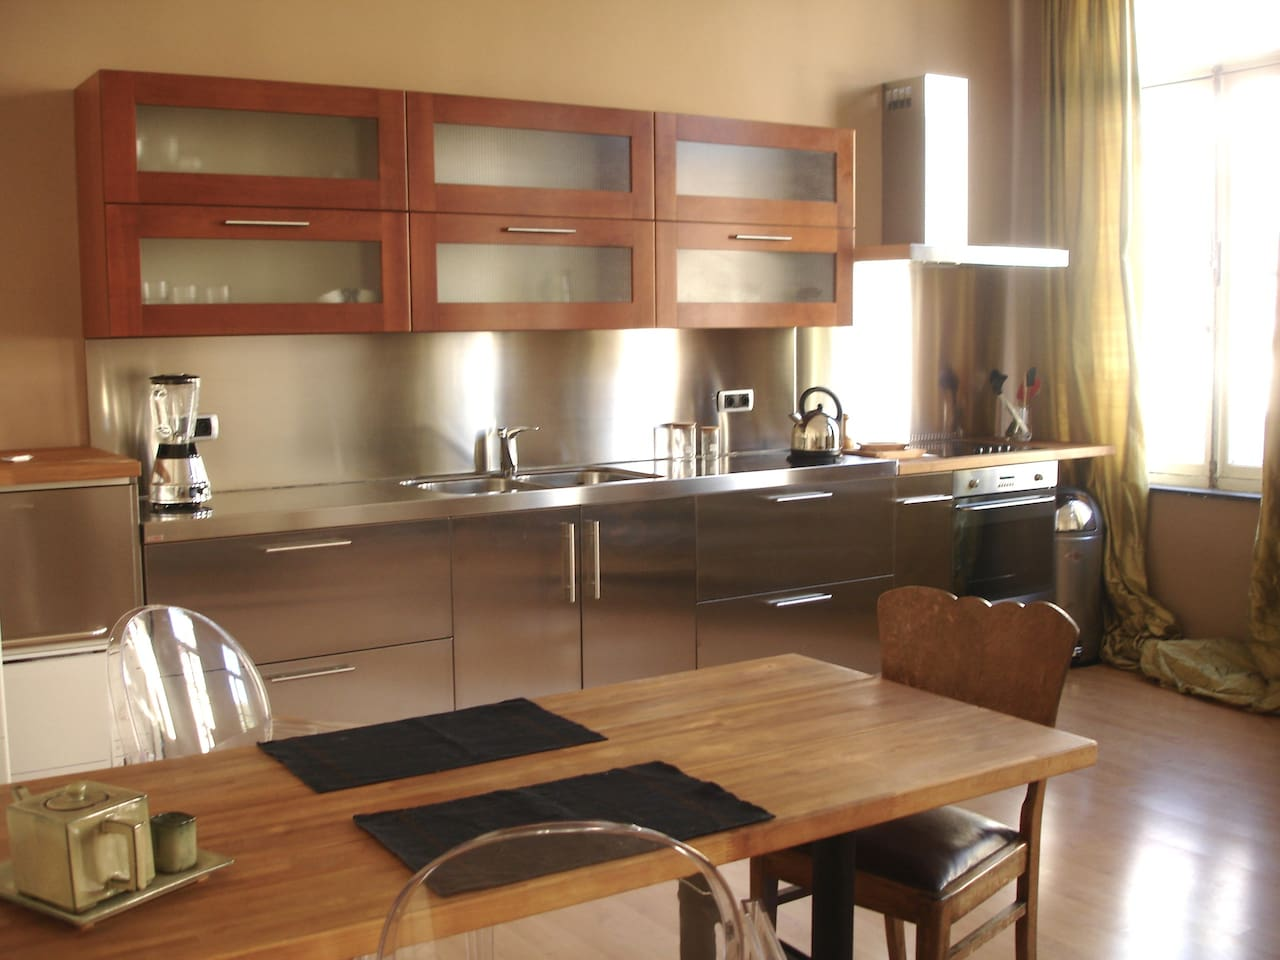 Kitchen and dining area. Top quality kitchen furniture and appliances. LOTS of light.